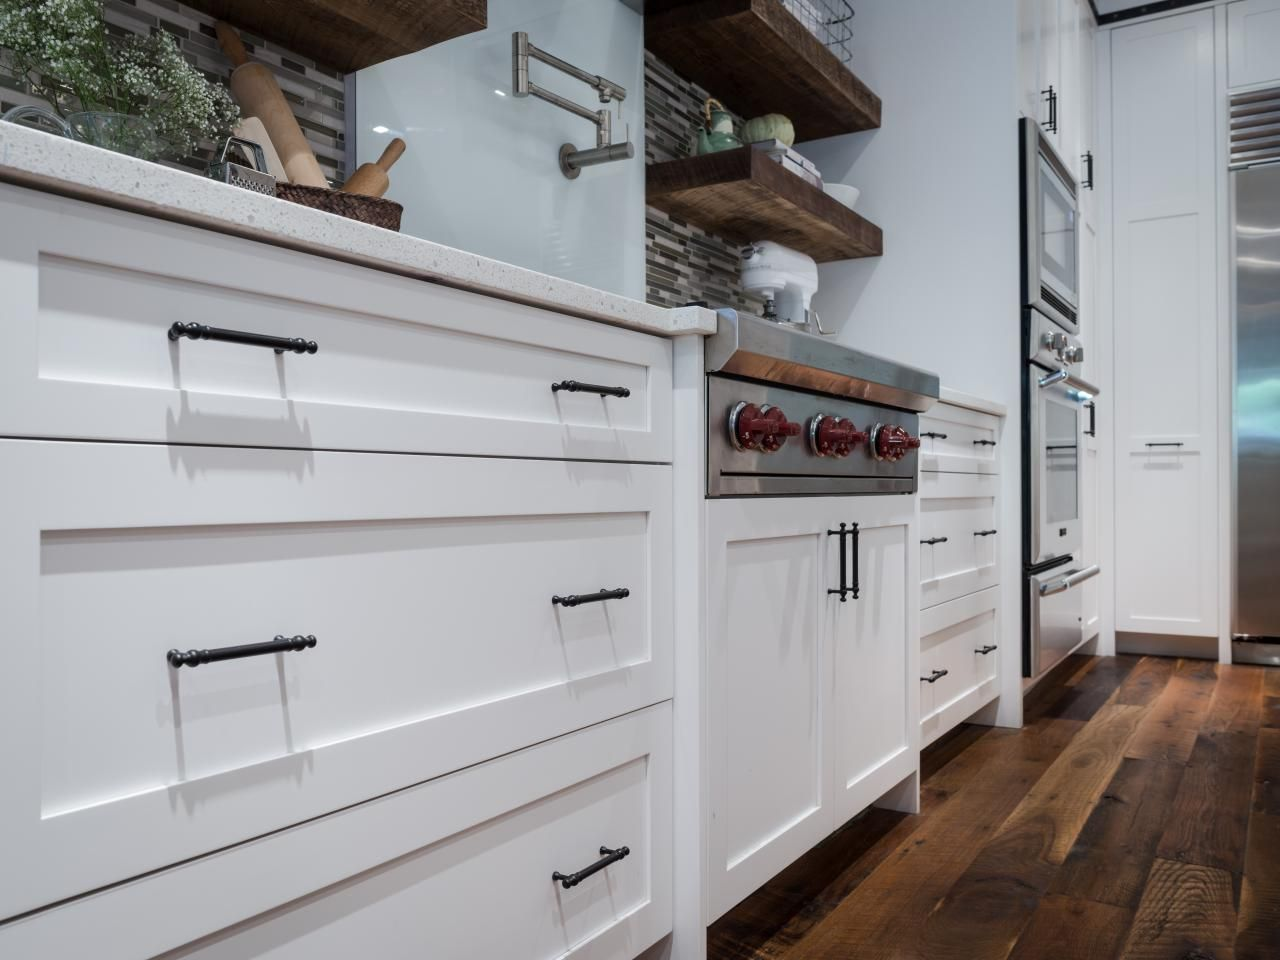 Hardware for shaker cabinets - 17 Best Images About Kitchen Cabinet Hardware On